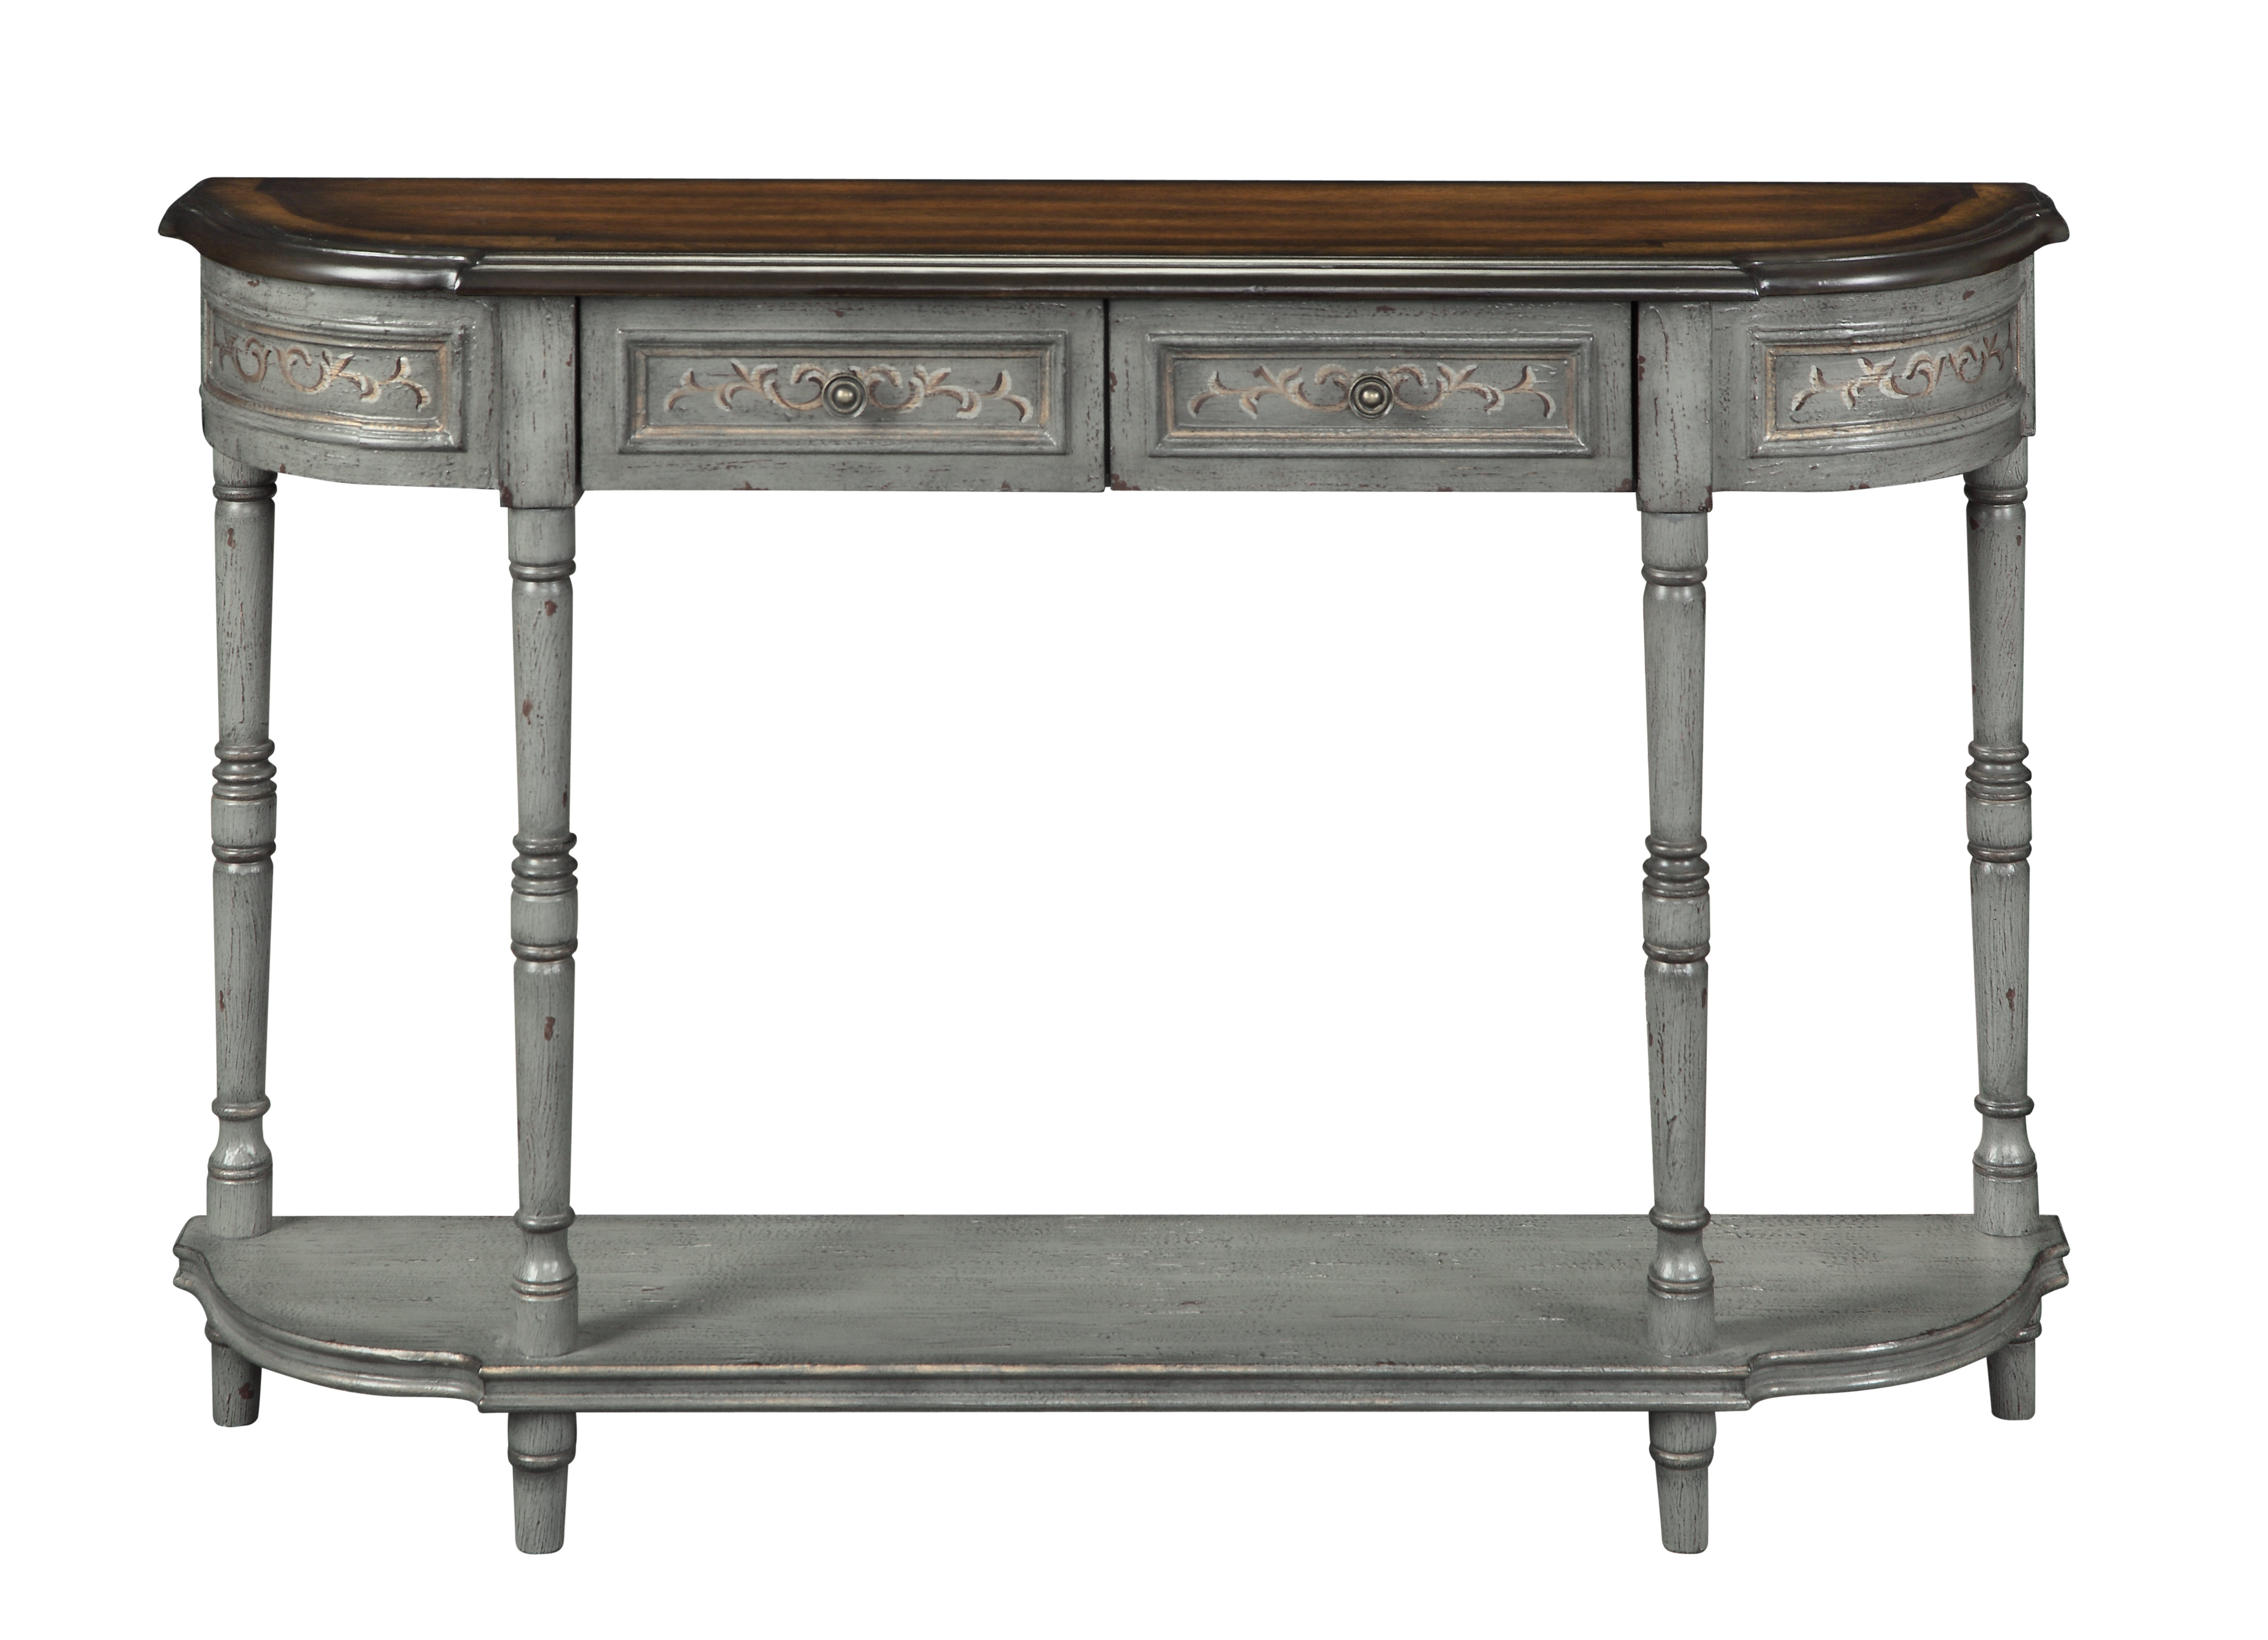 Itchington Console Table & Reviews | Joss & Main Throughout Hand Carved White Wash Console Tables (View 10 of 20)